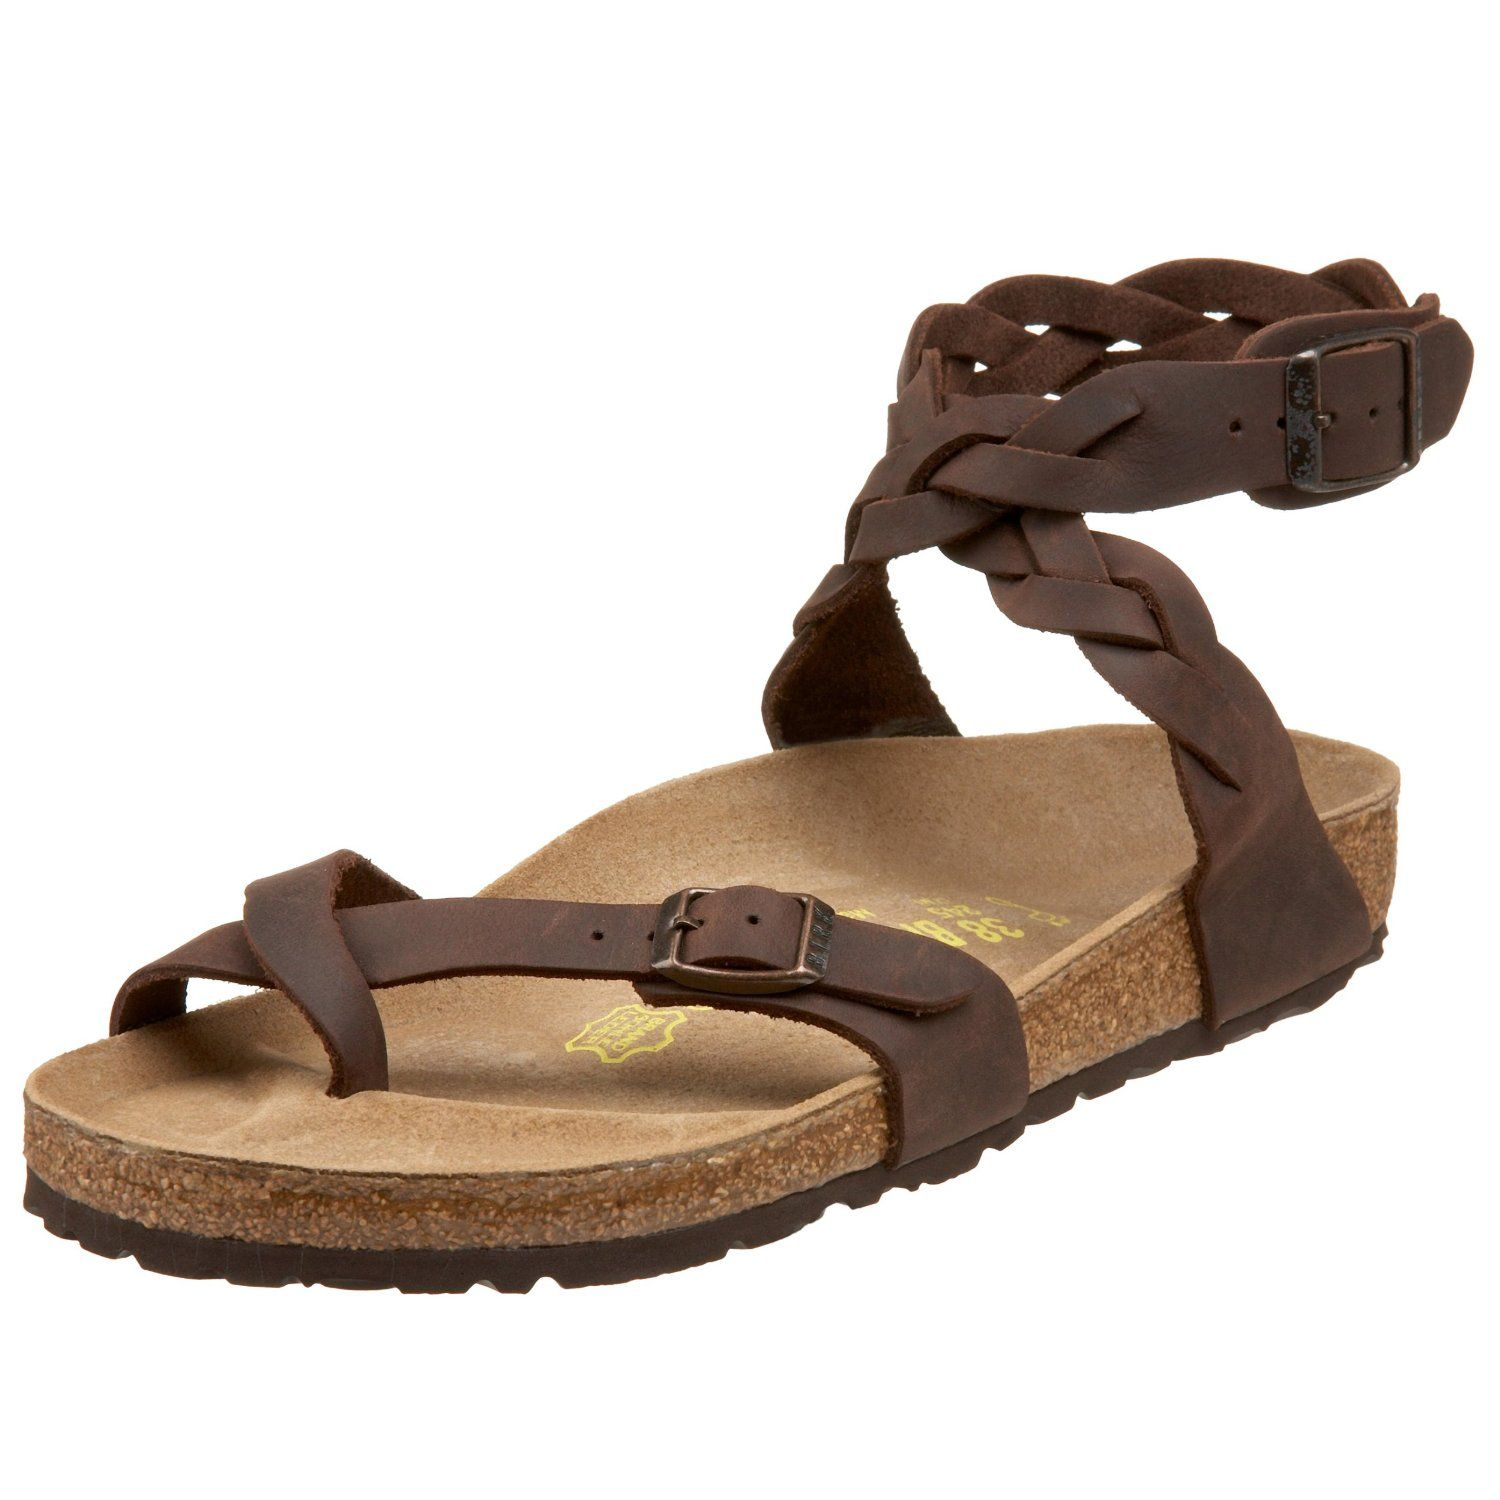 b888f9011069 Birkenstock Tatami Yara. I am so not the typical Birk girl